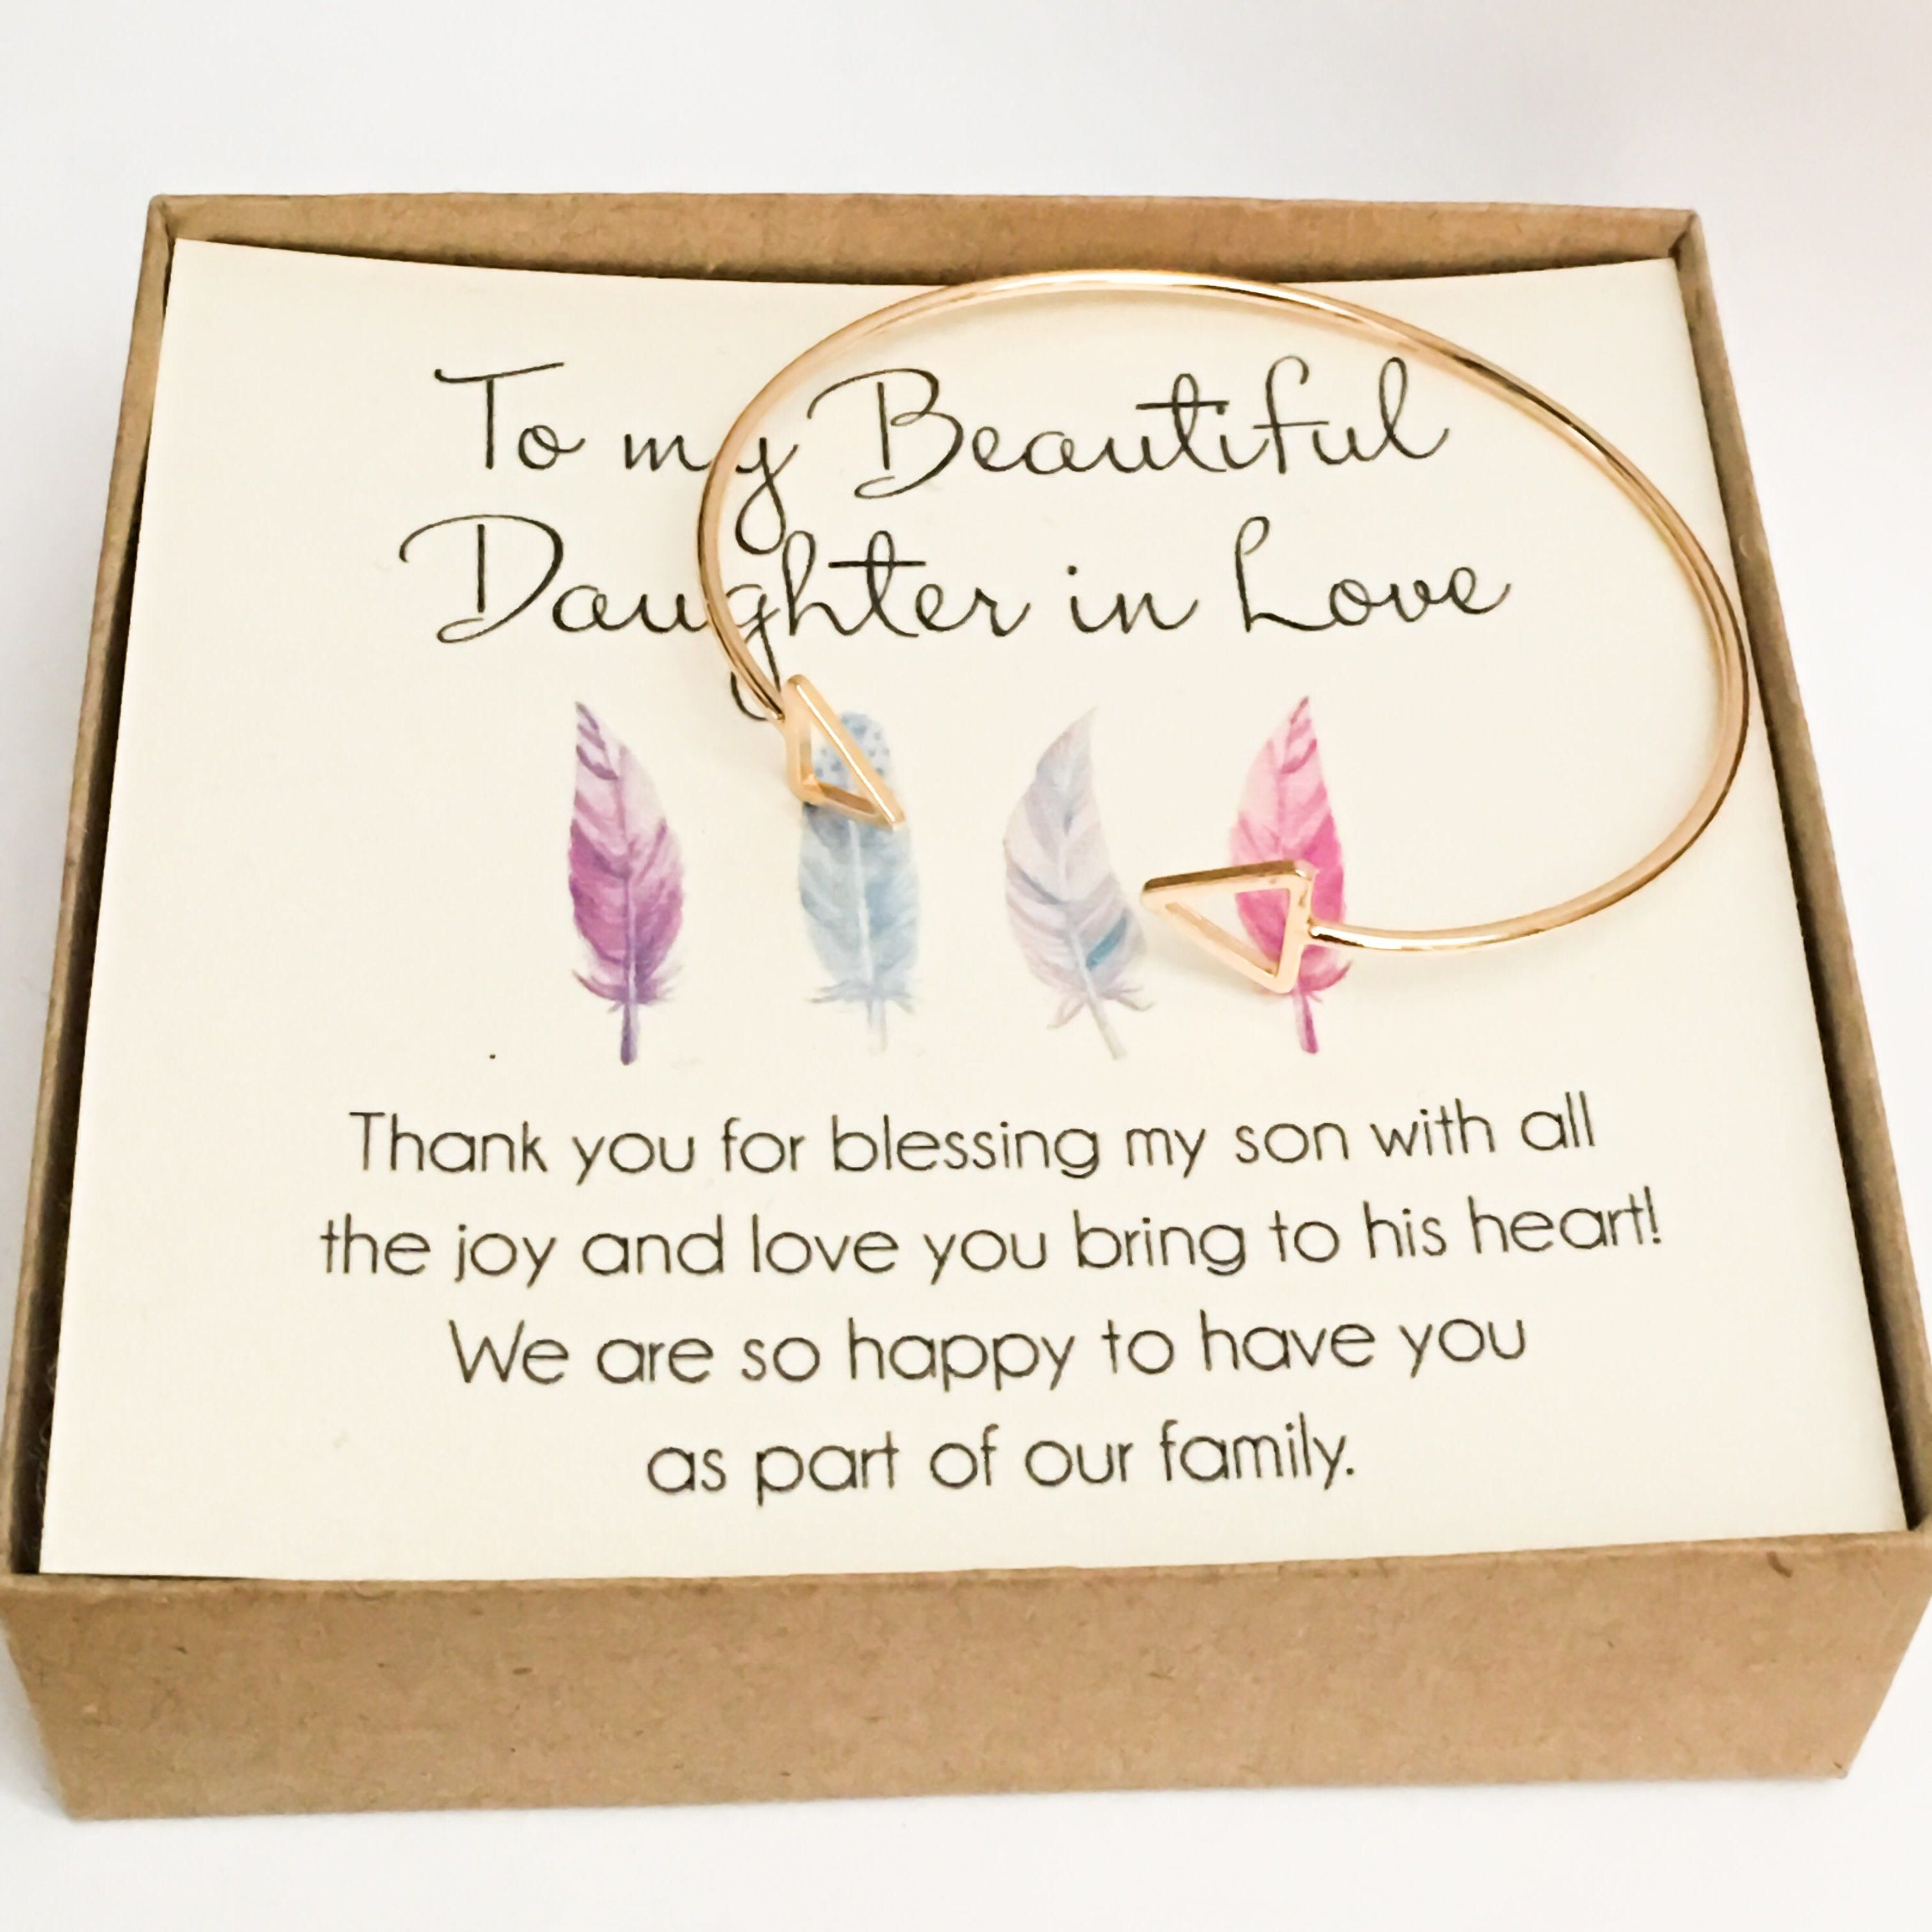 Daughter in Law Bracelet, Daughter in Love Gift, Son's